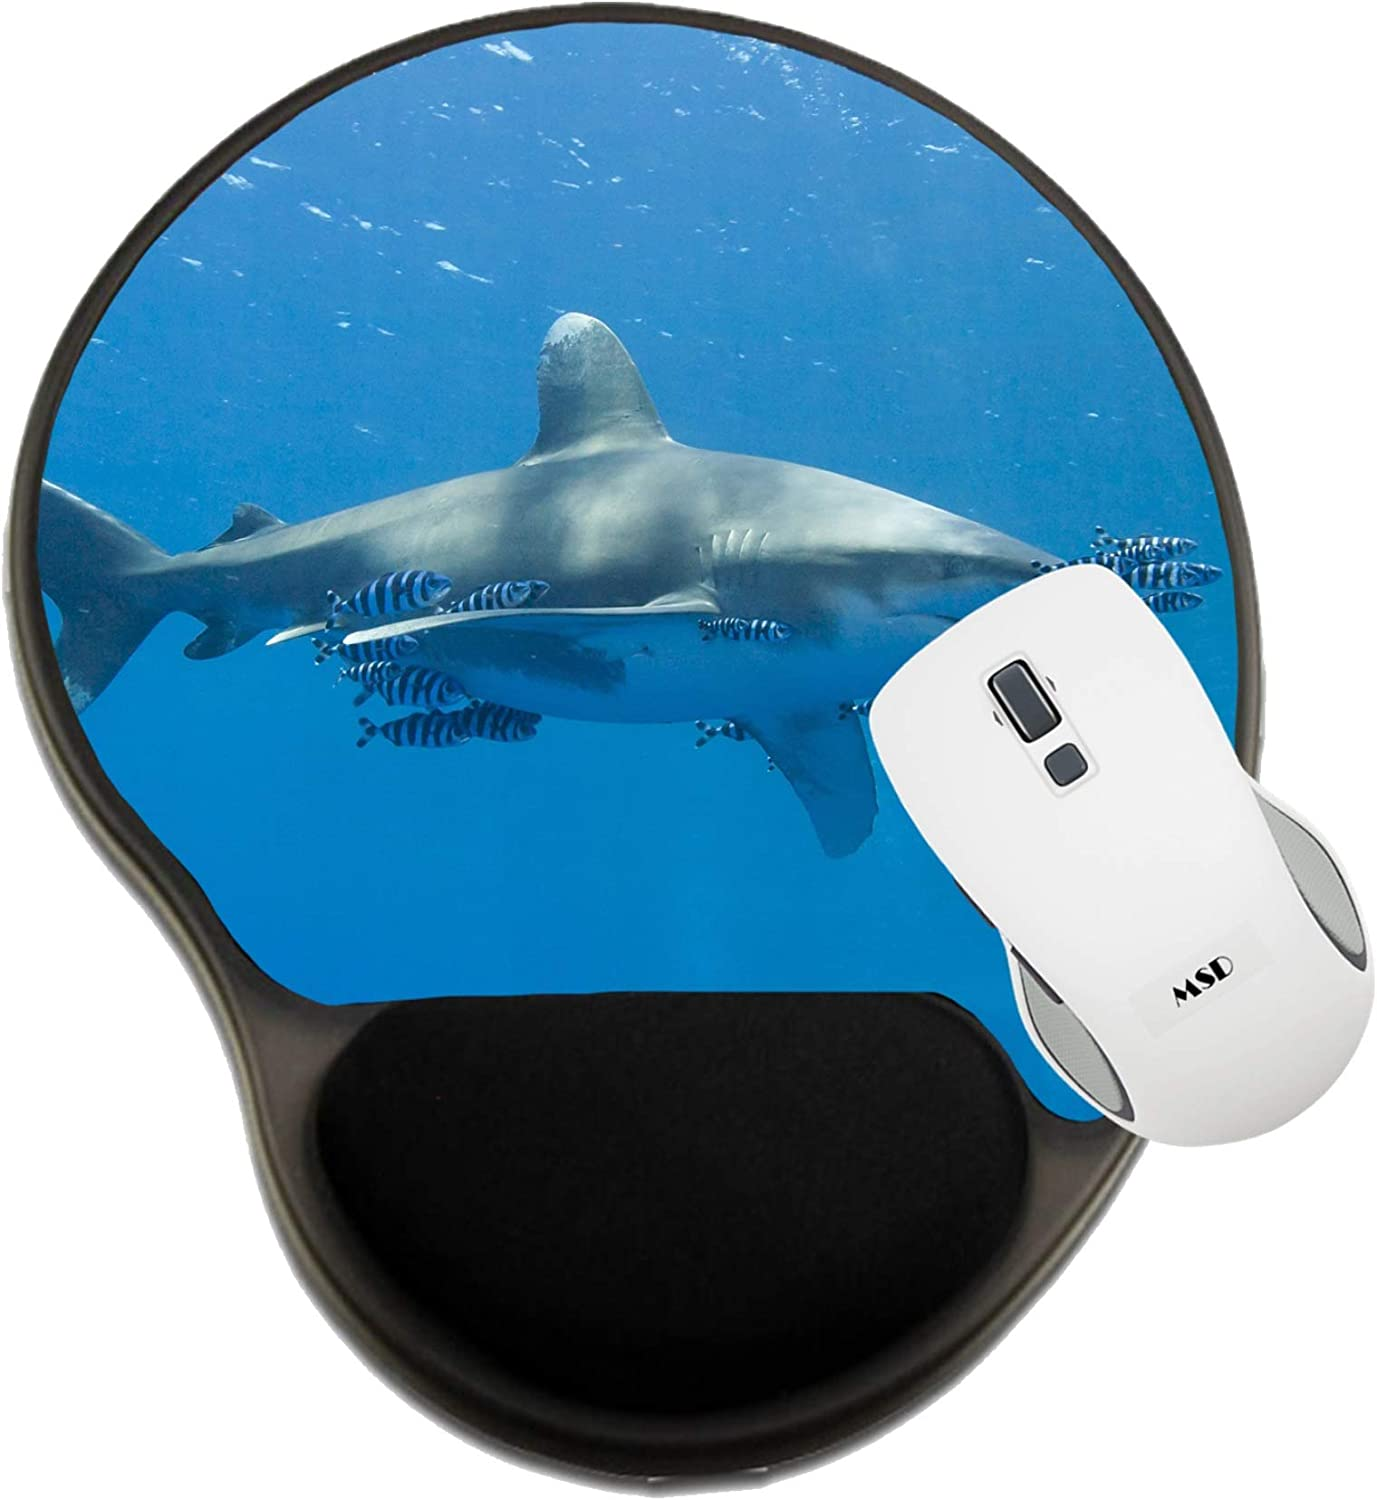 MSD Mousepad Wrist Rest Protected Mouse Pads, Mat with Wrist Support, Large Oceanic White tip Shark Carcharhinus longimanu